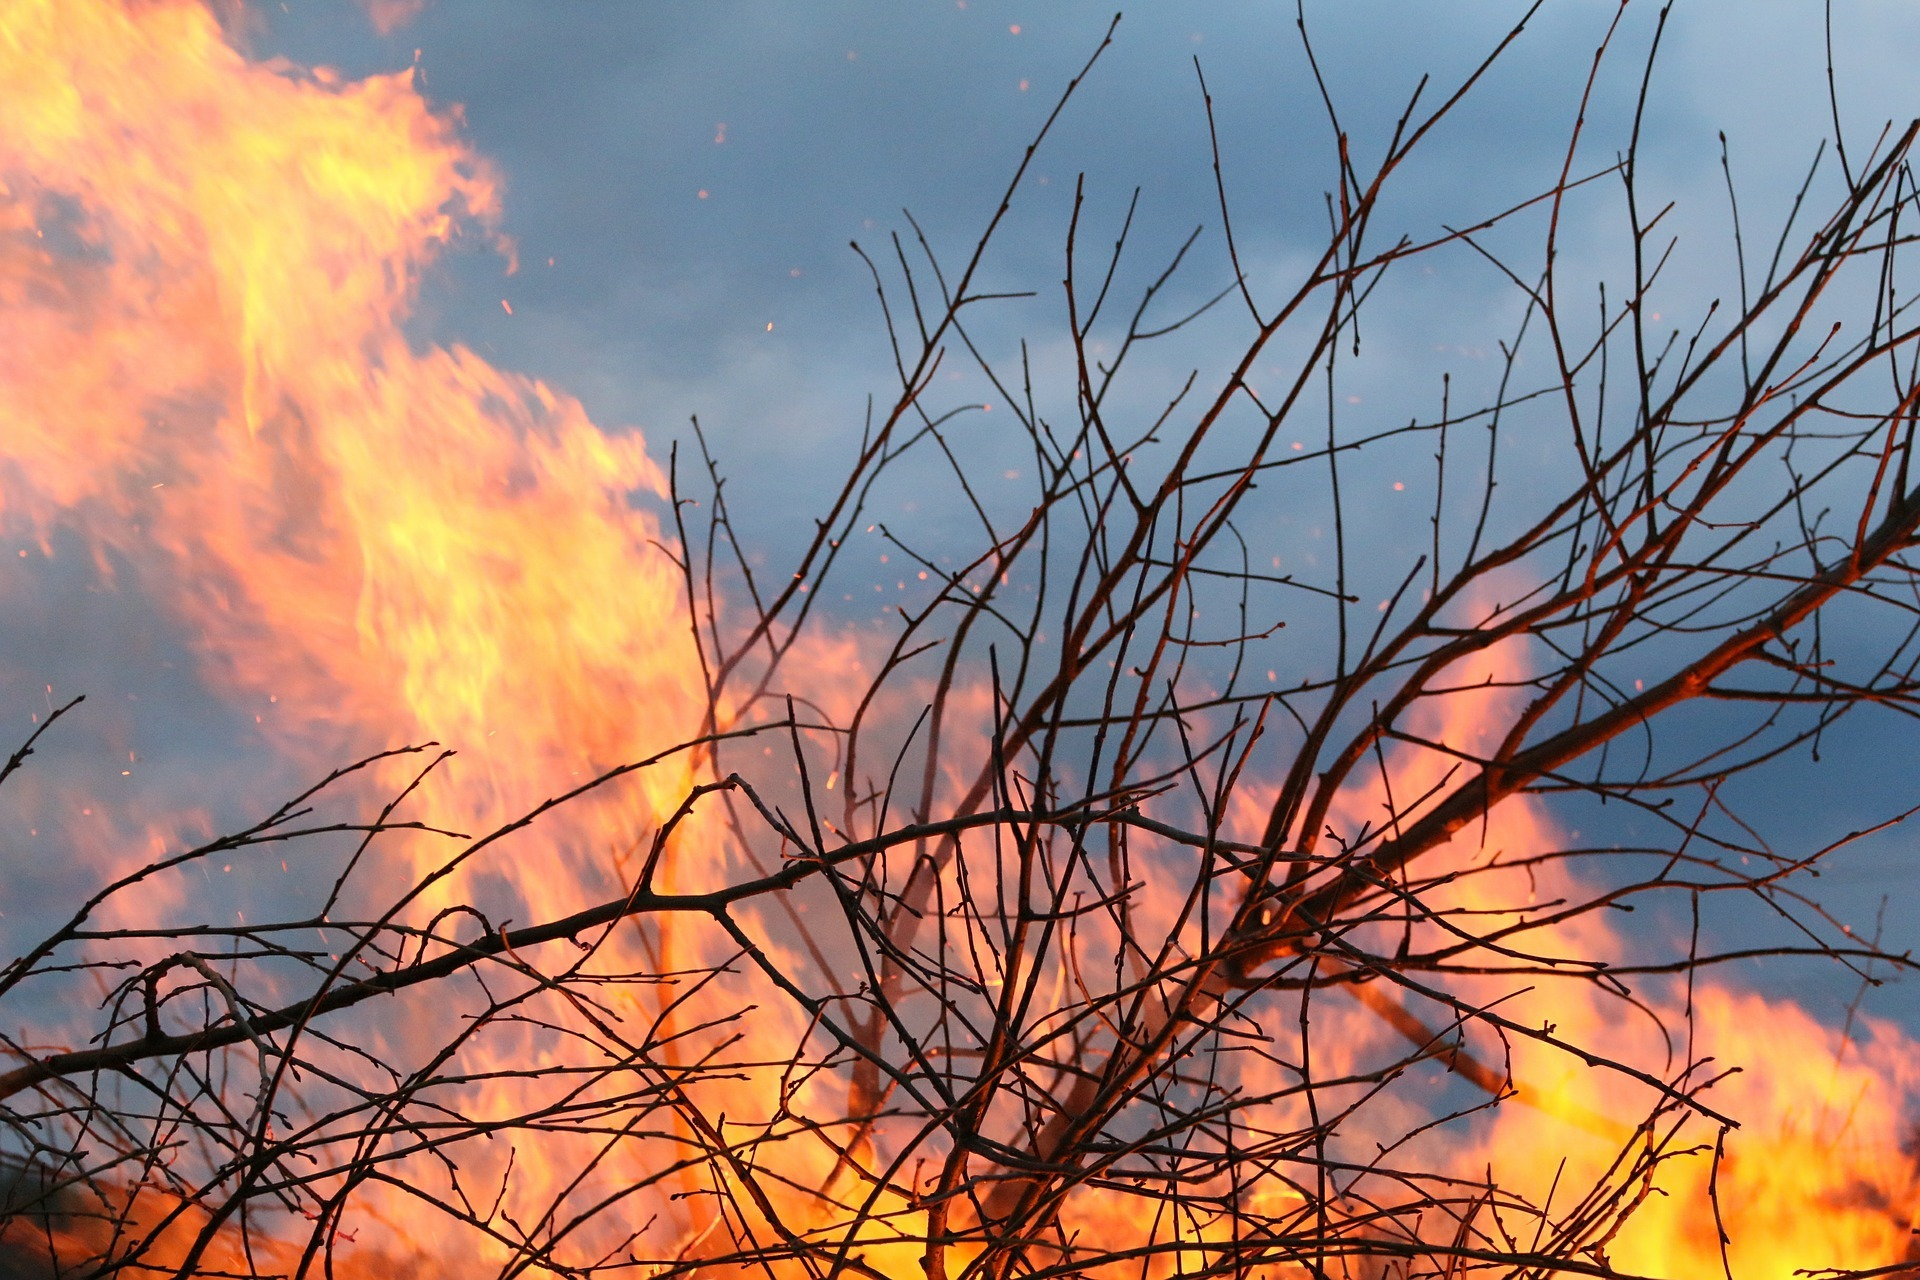 FIRE: A gorse fire took hold in Catterick Garrison on Wednesday evening. Picture: Pixabay